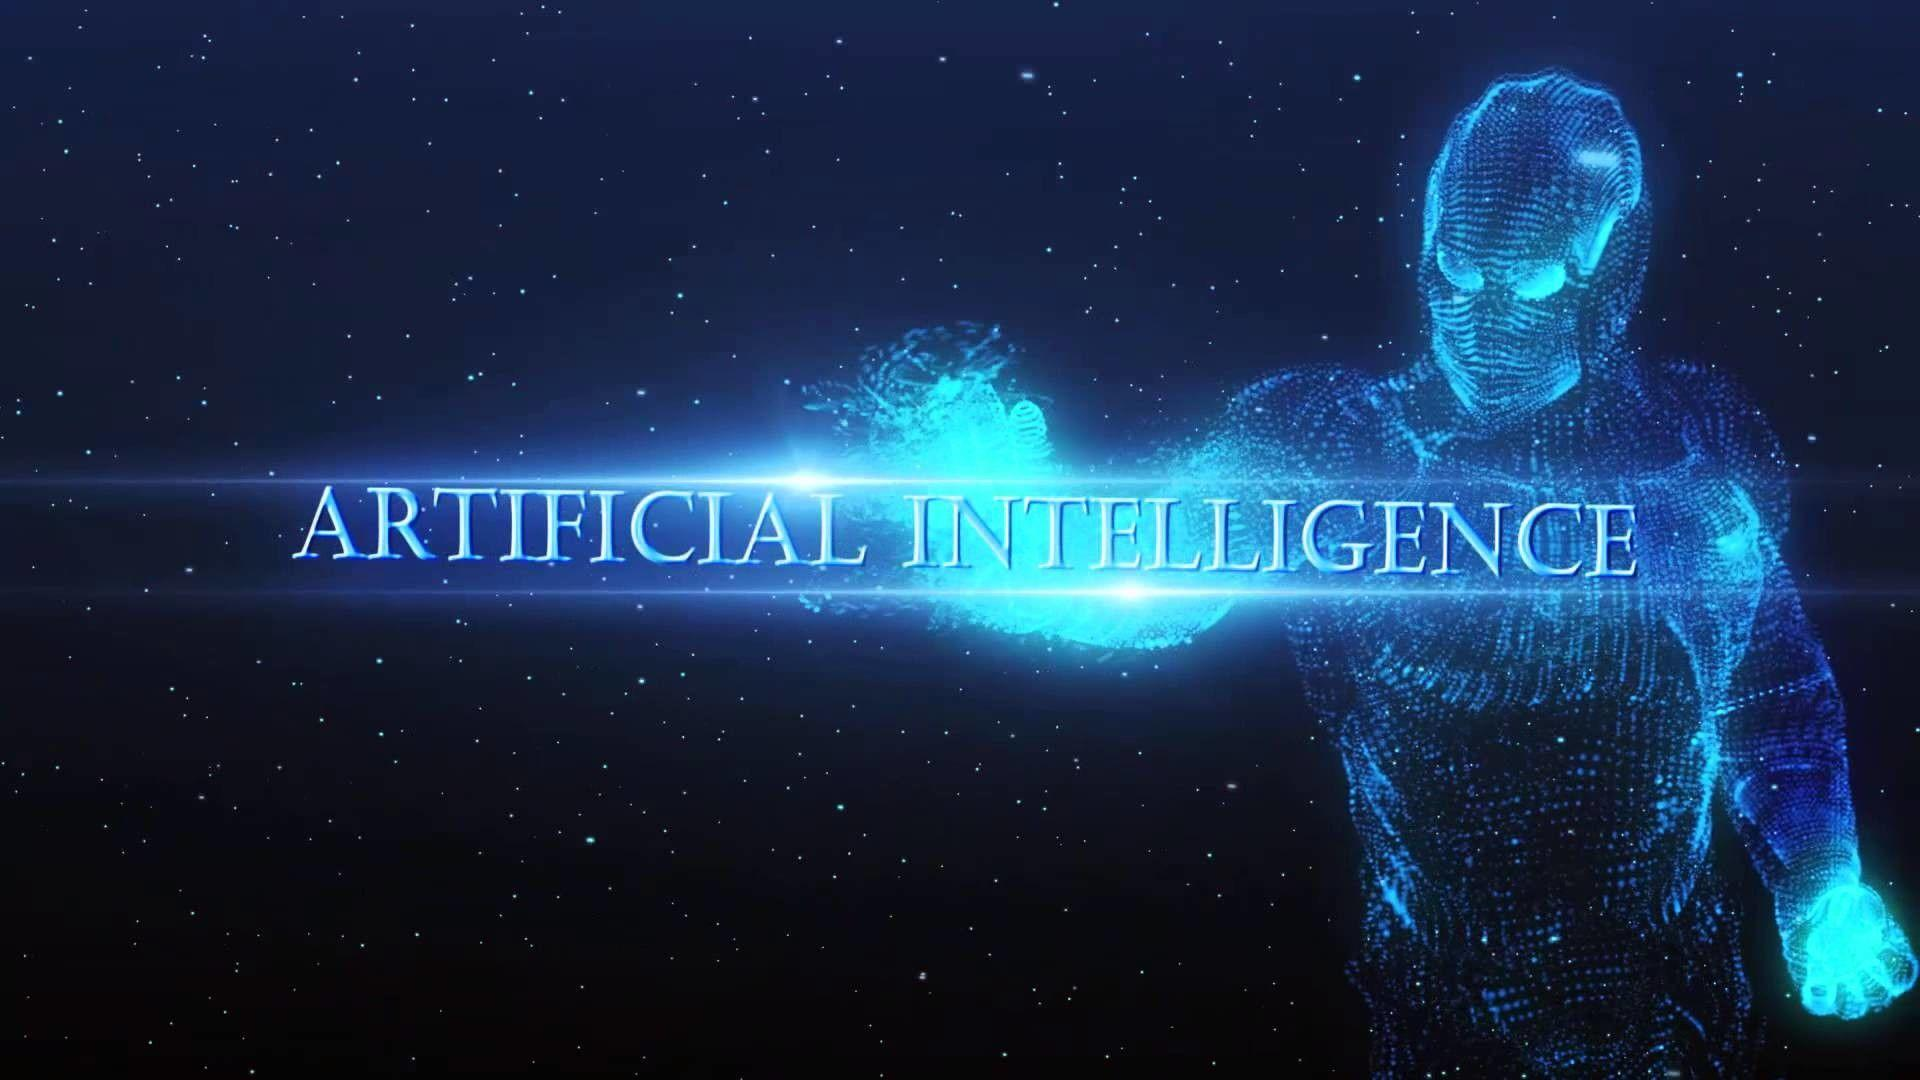 Ultra Hd Artificial Intelligence Wallpaper Quantum Computing